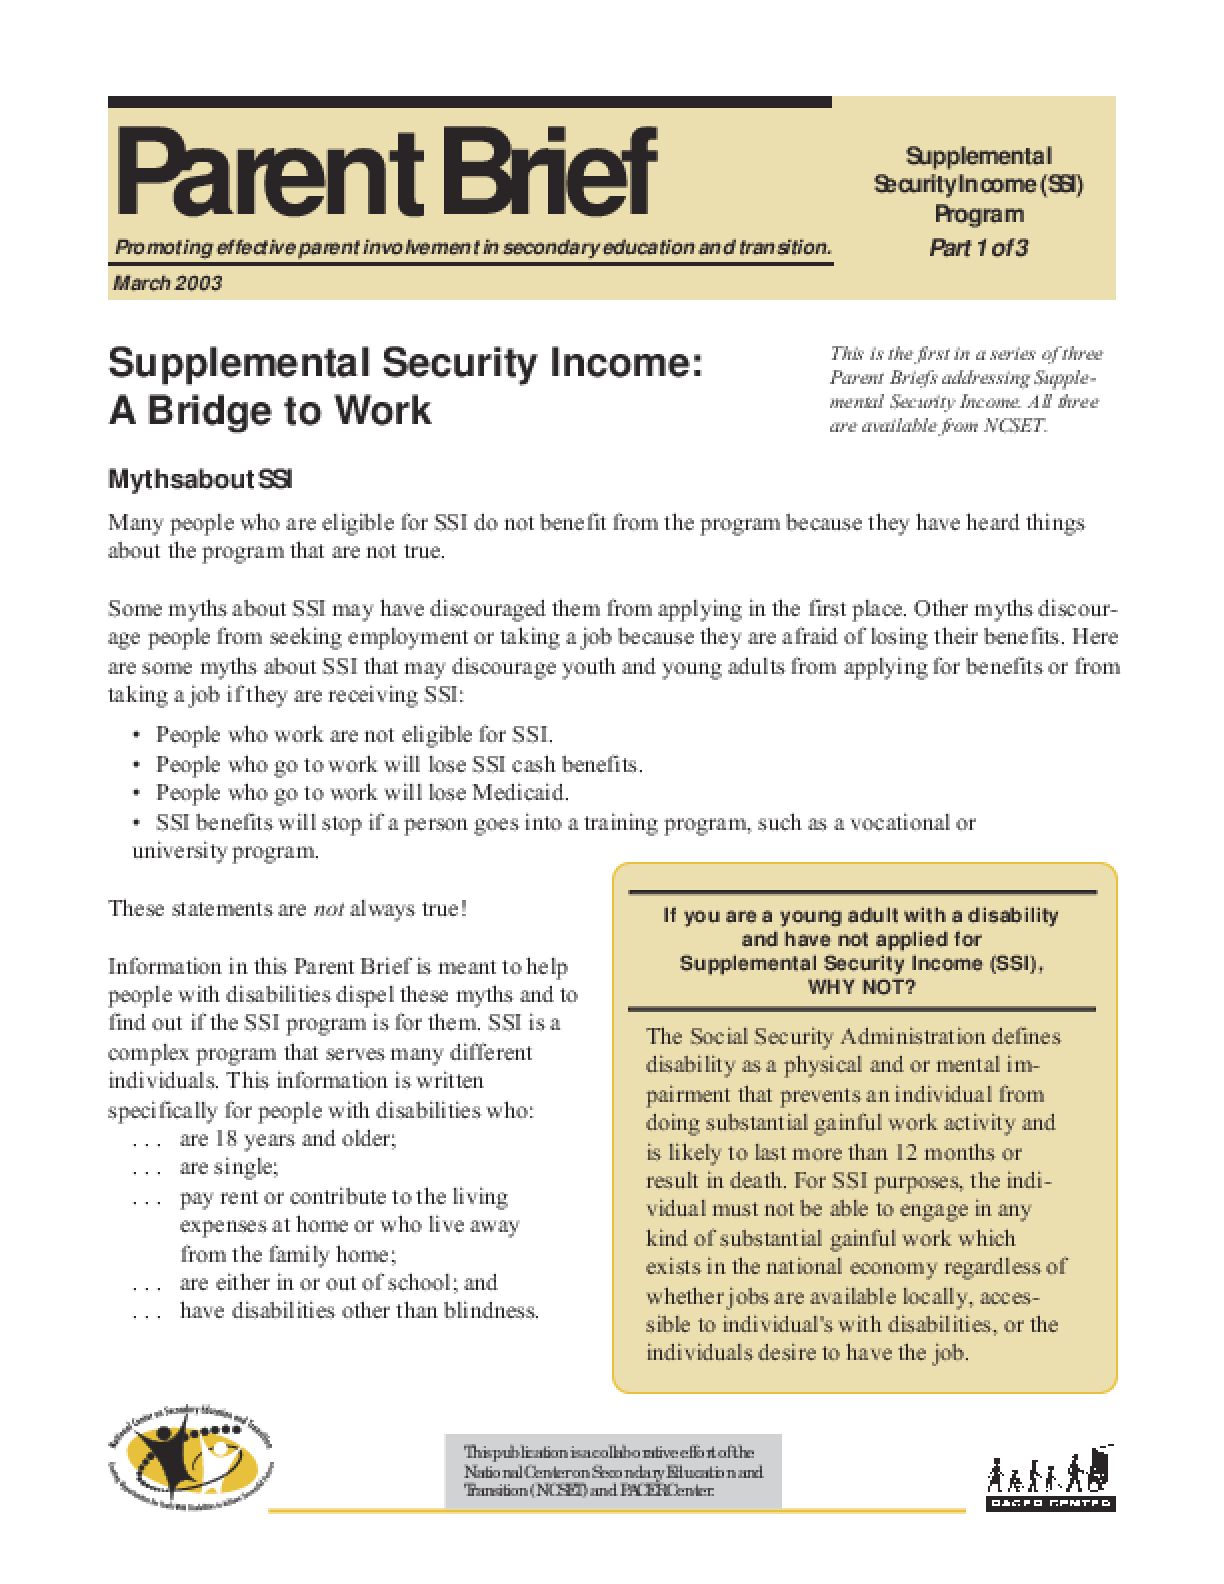 Supplemental Security Income: A Bridge to Work